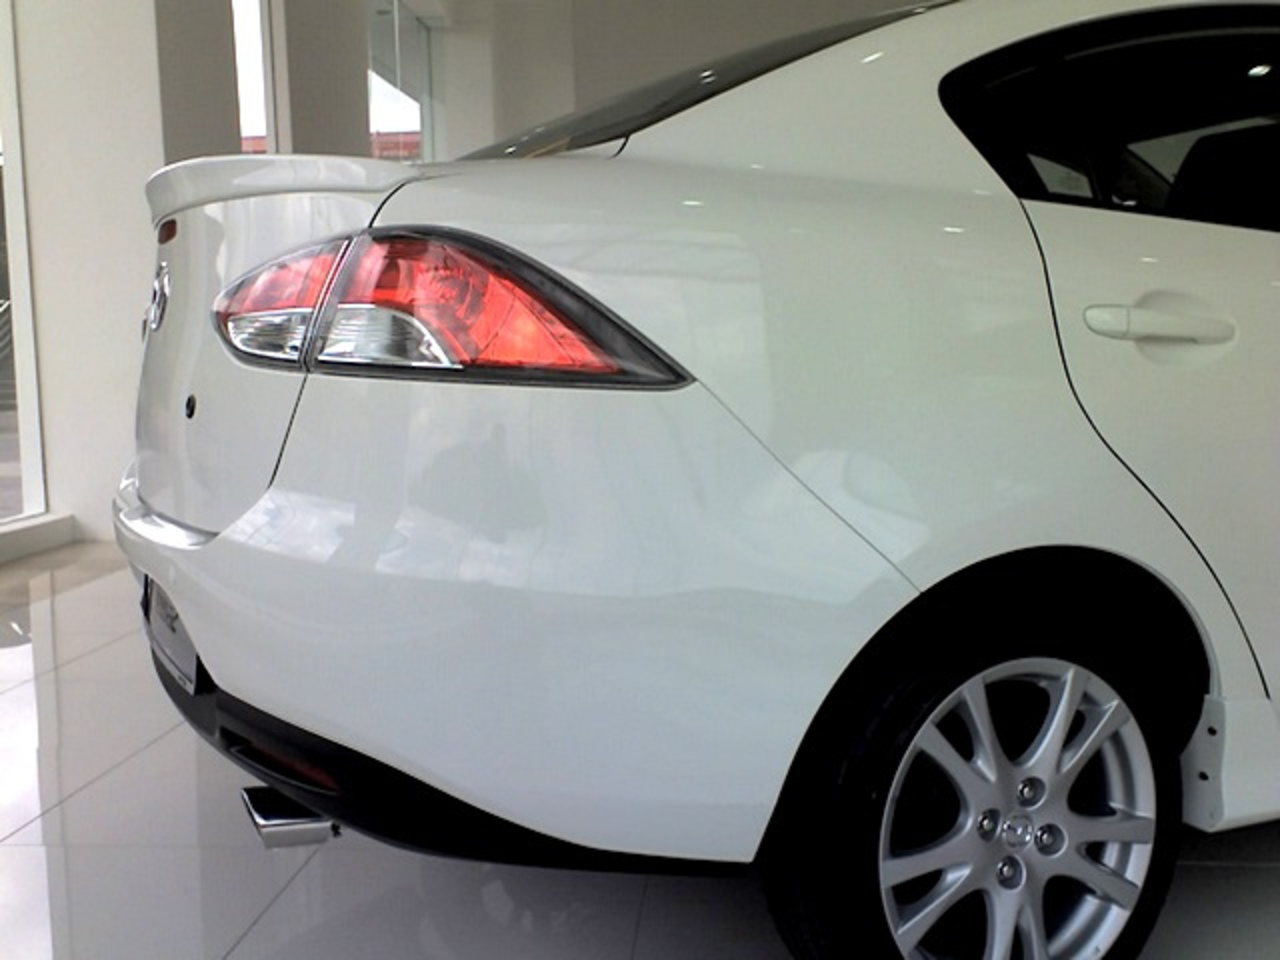 Mazda 2 Sedan rear | Flickr - Photo Sharing!